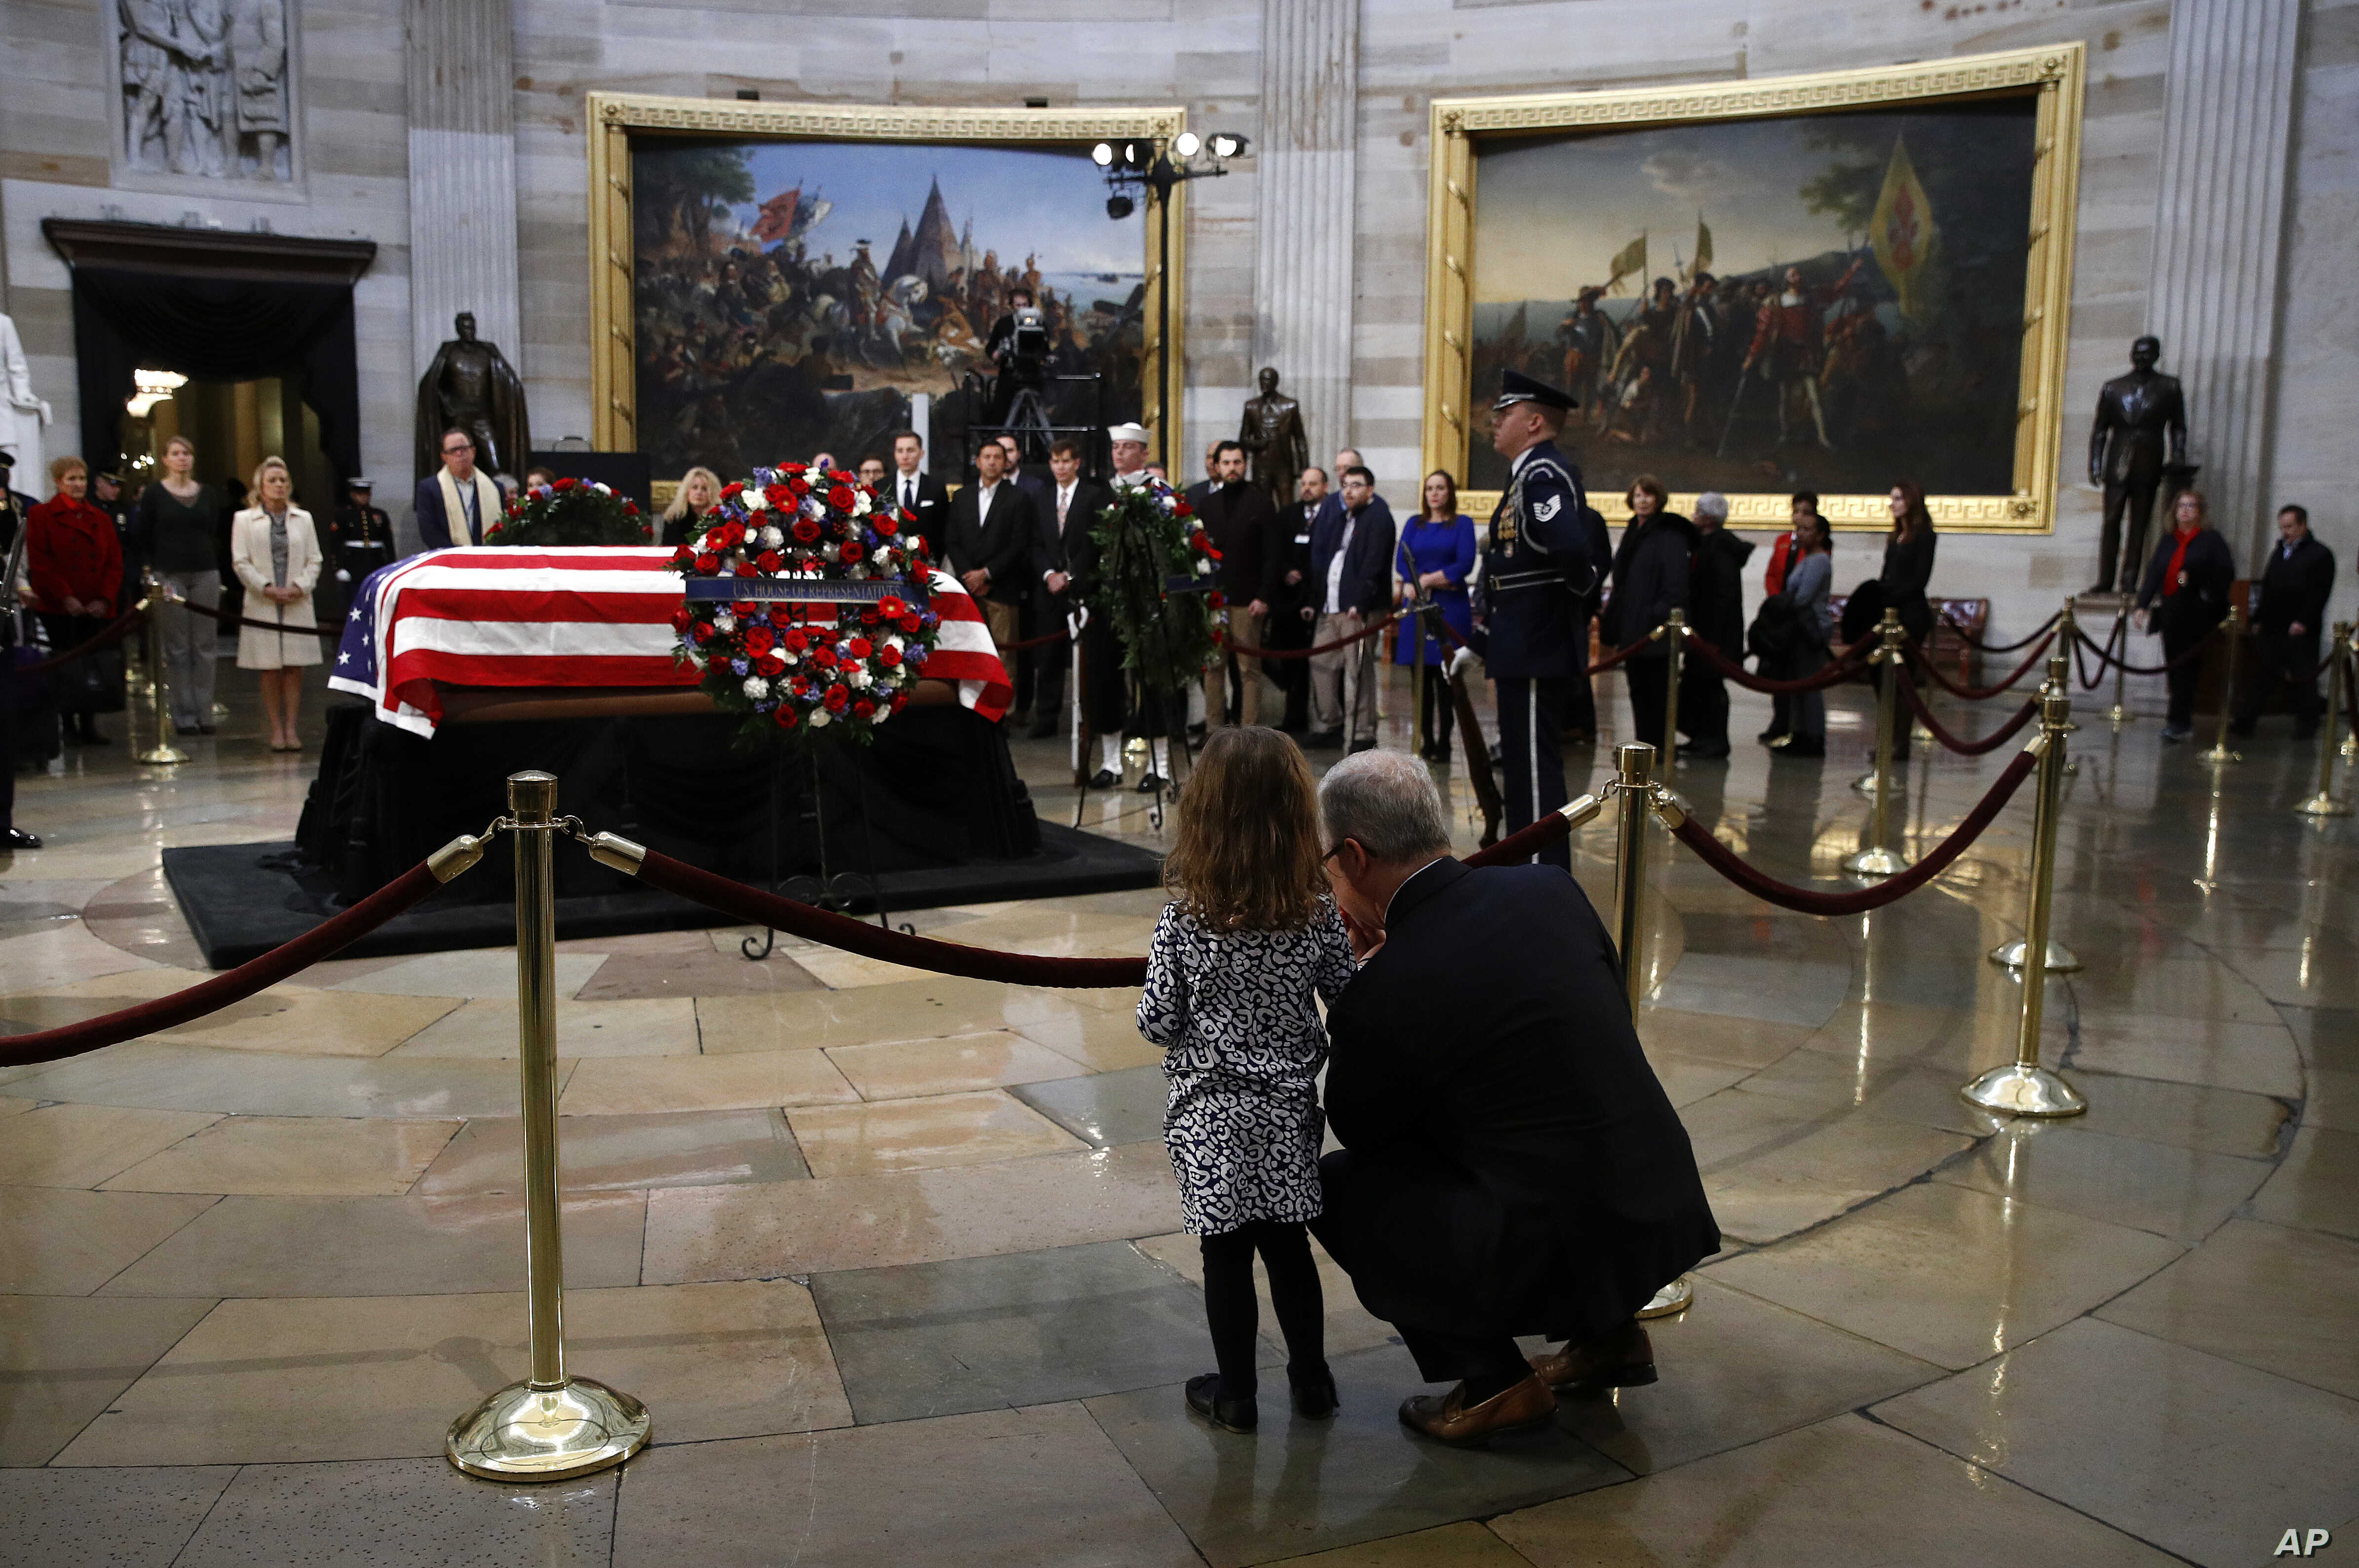 Rep. Patrick McHenry, R-N.C., kneels alongside his daughter Cecelia near the flag-draped casket of former President George H.W. Bush as he lies in state in the Capitol Rotunda in Washington, Dec. 4, 2018.